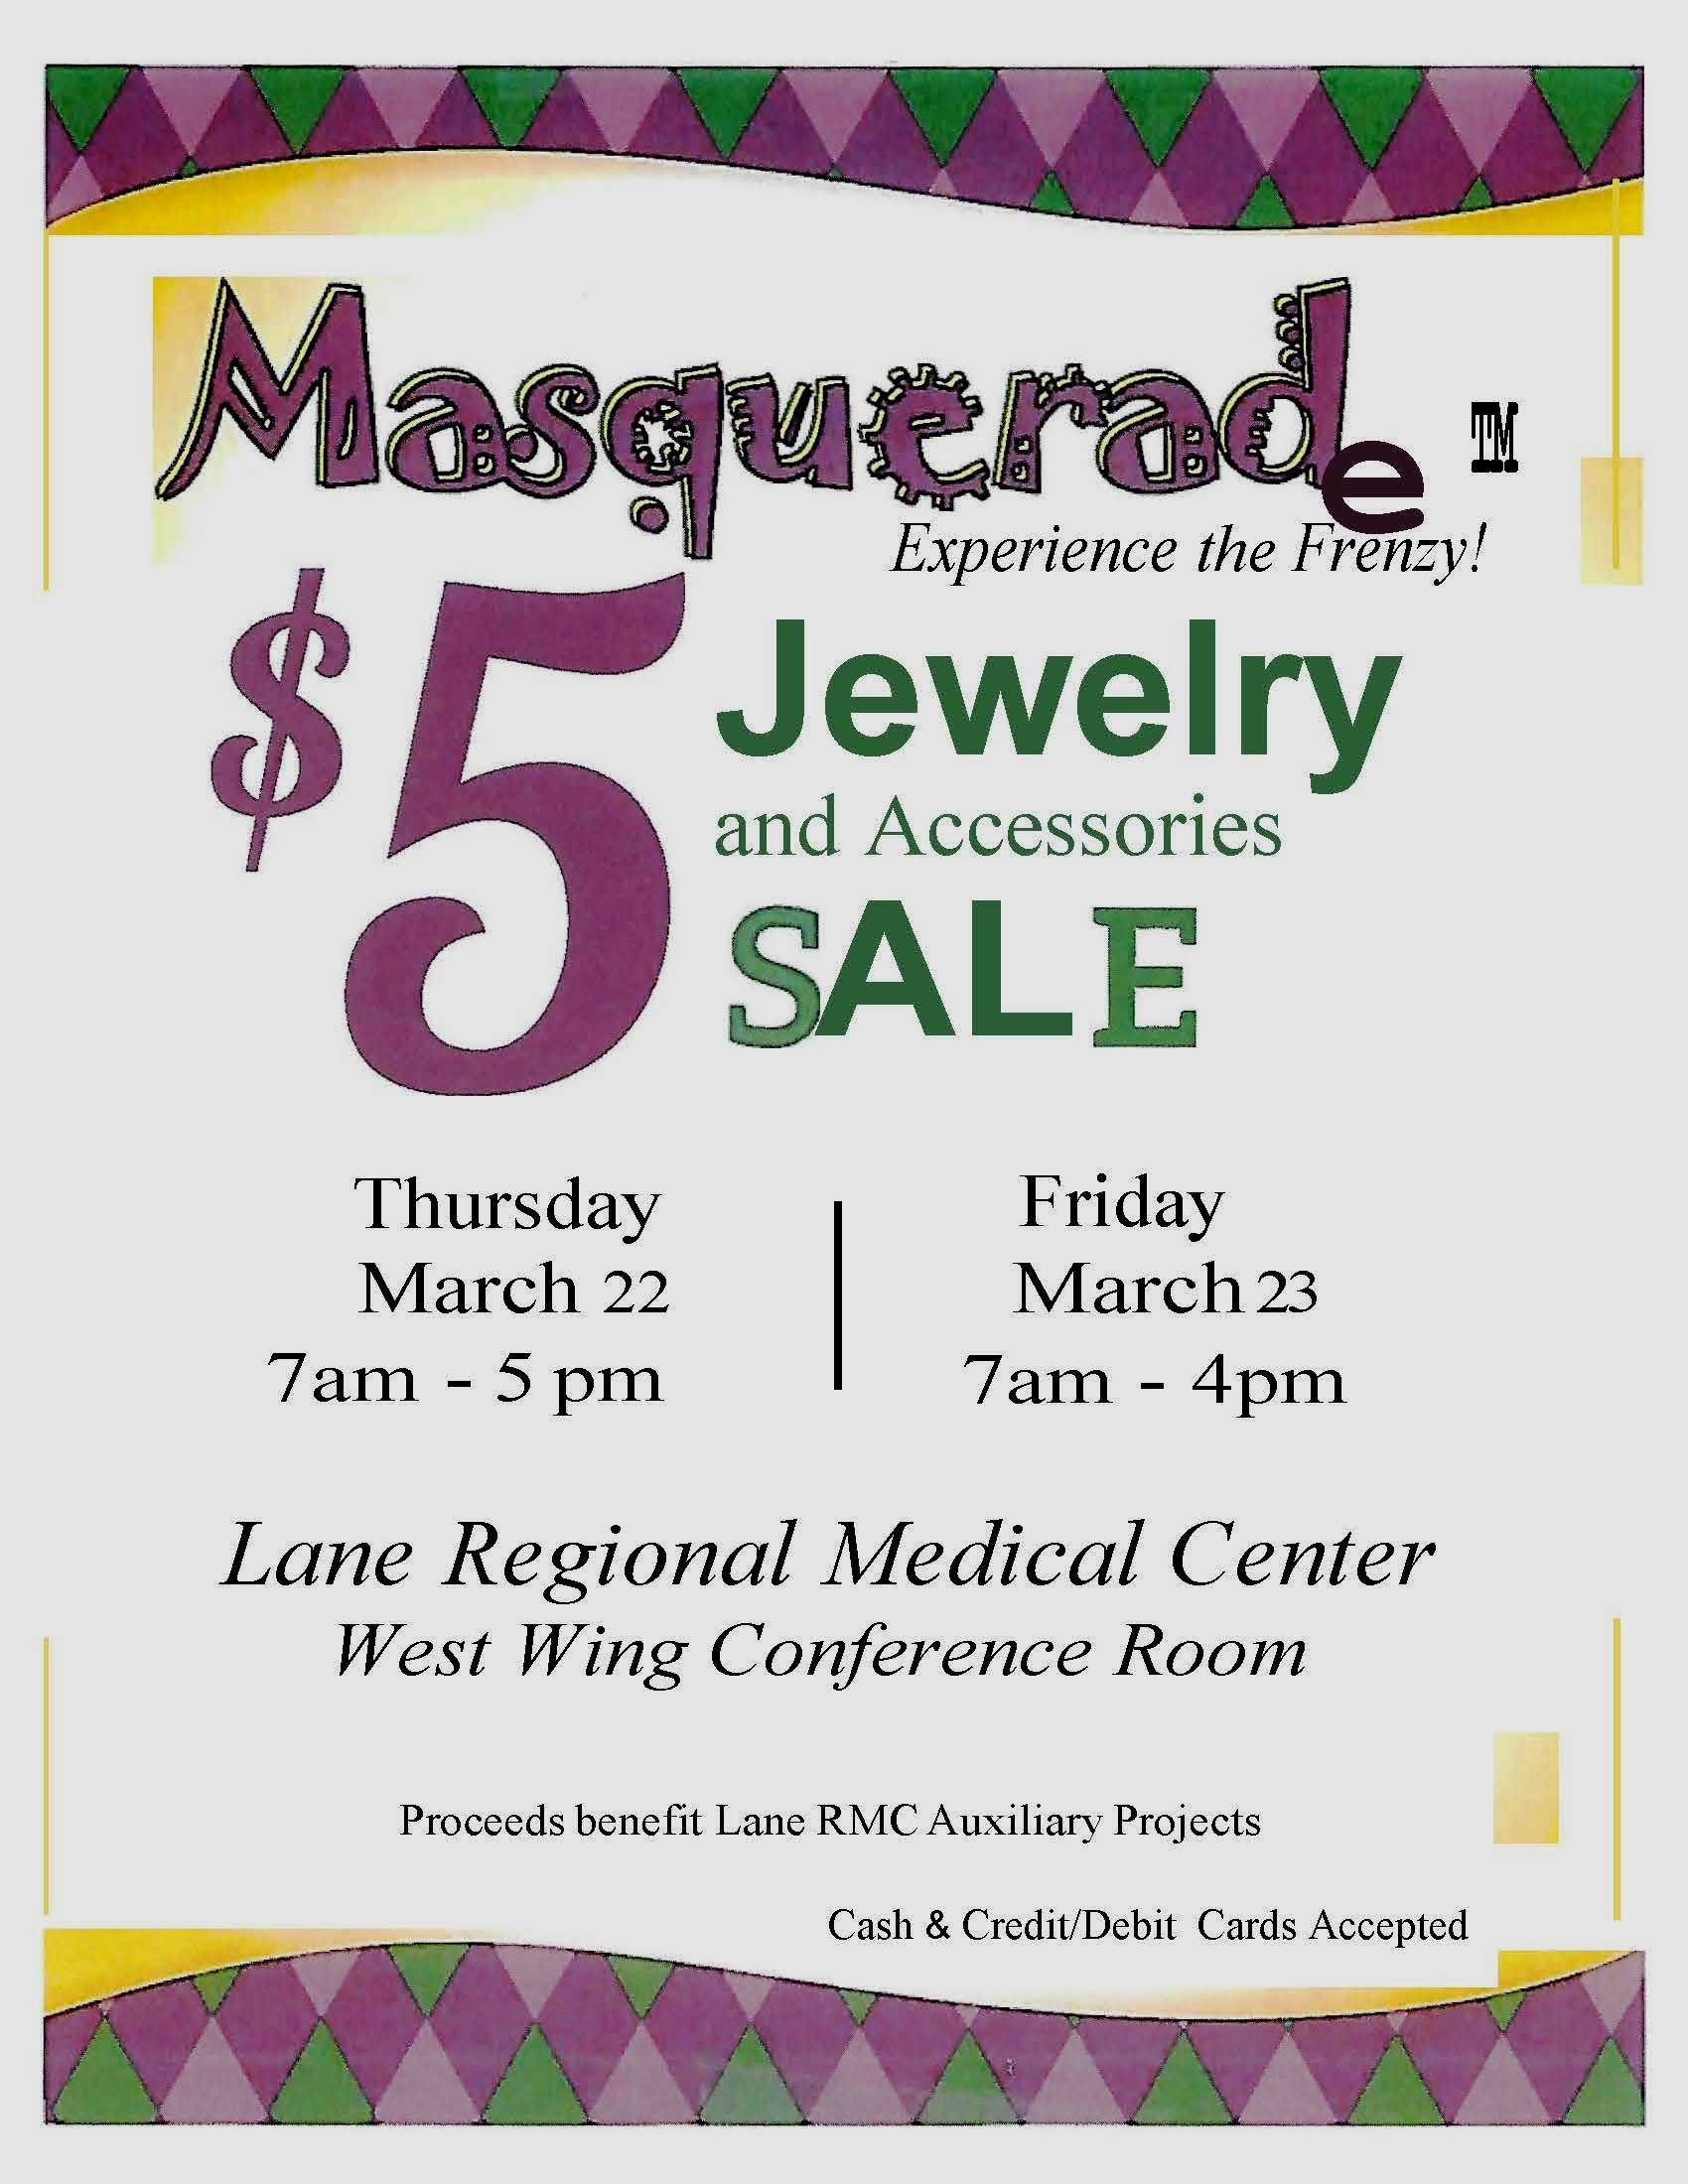 Lane Auxiliary to host $5 jewelry and accesories sale